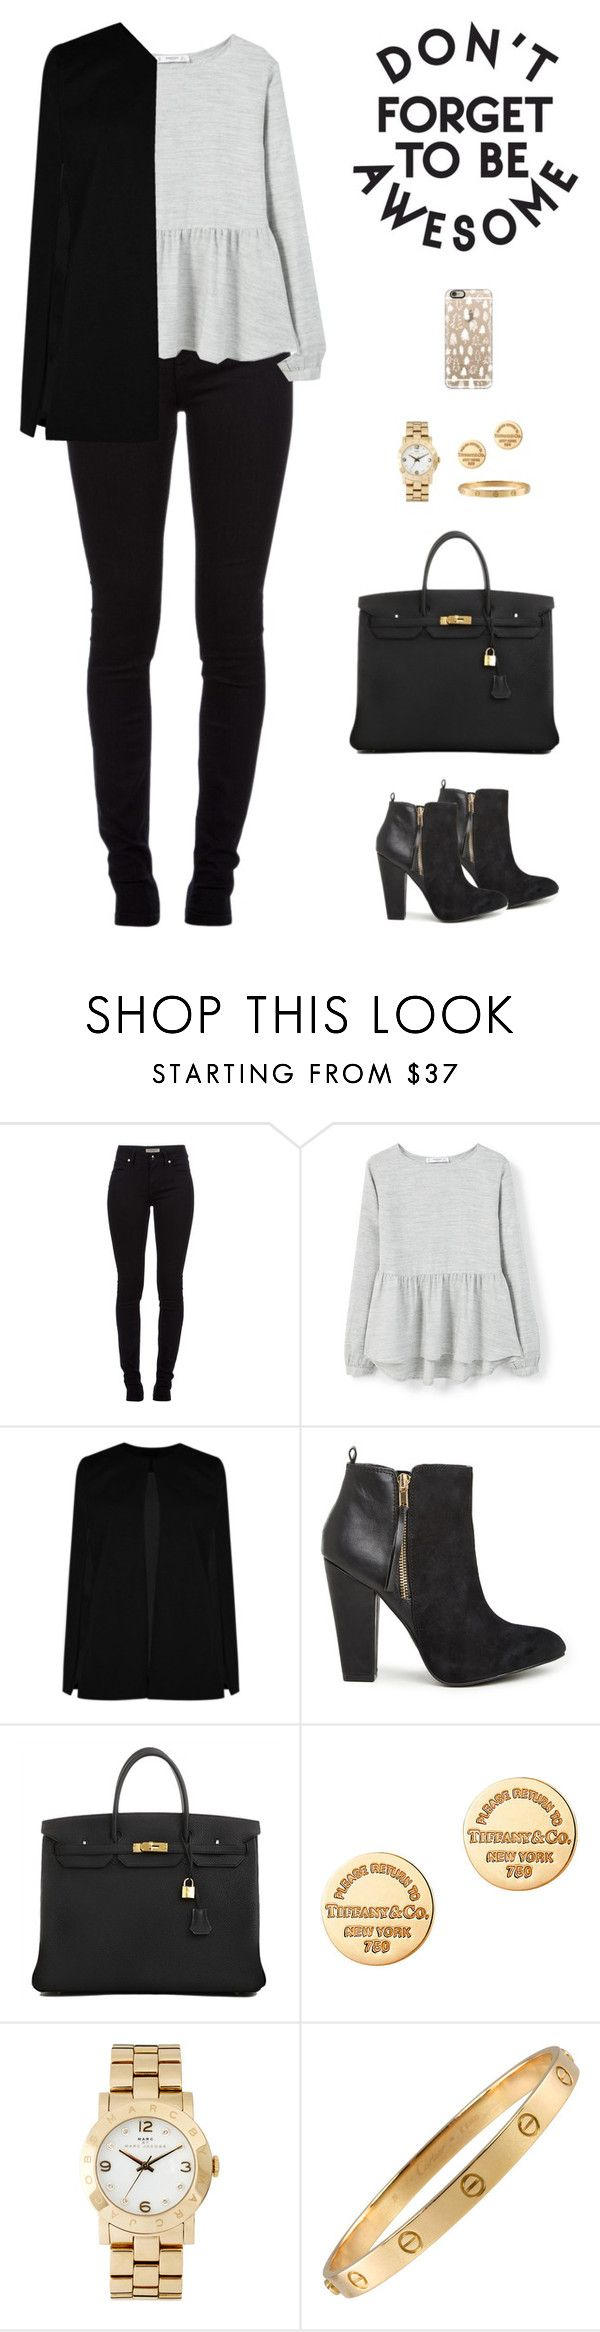 """""""There ain't no telling who you might meet"""" by sashiss ❤ liked on Polyvore featuring Burberry, MANGO, Boohoo, Steve Madden, Hermès, Tiffany & Co., Marc by Marc Jacobs, Cartier and Casetify"""